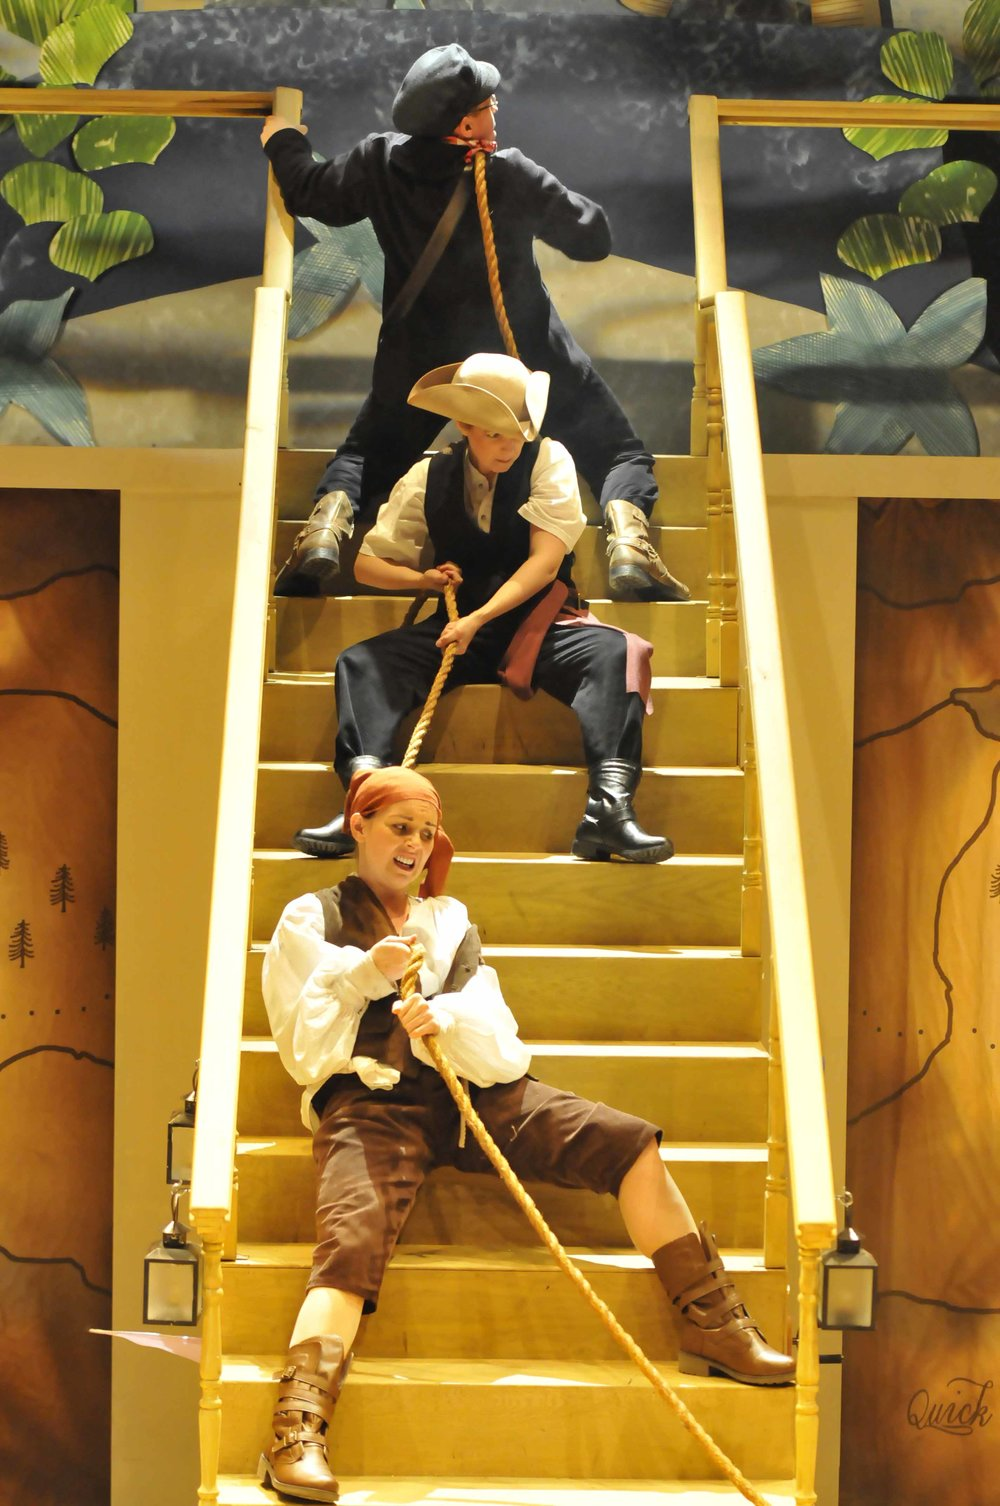 Peter Pan - pirates on stairs.jpg